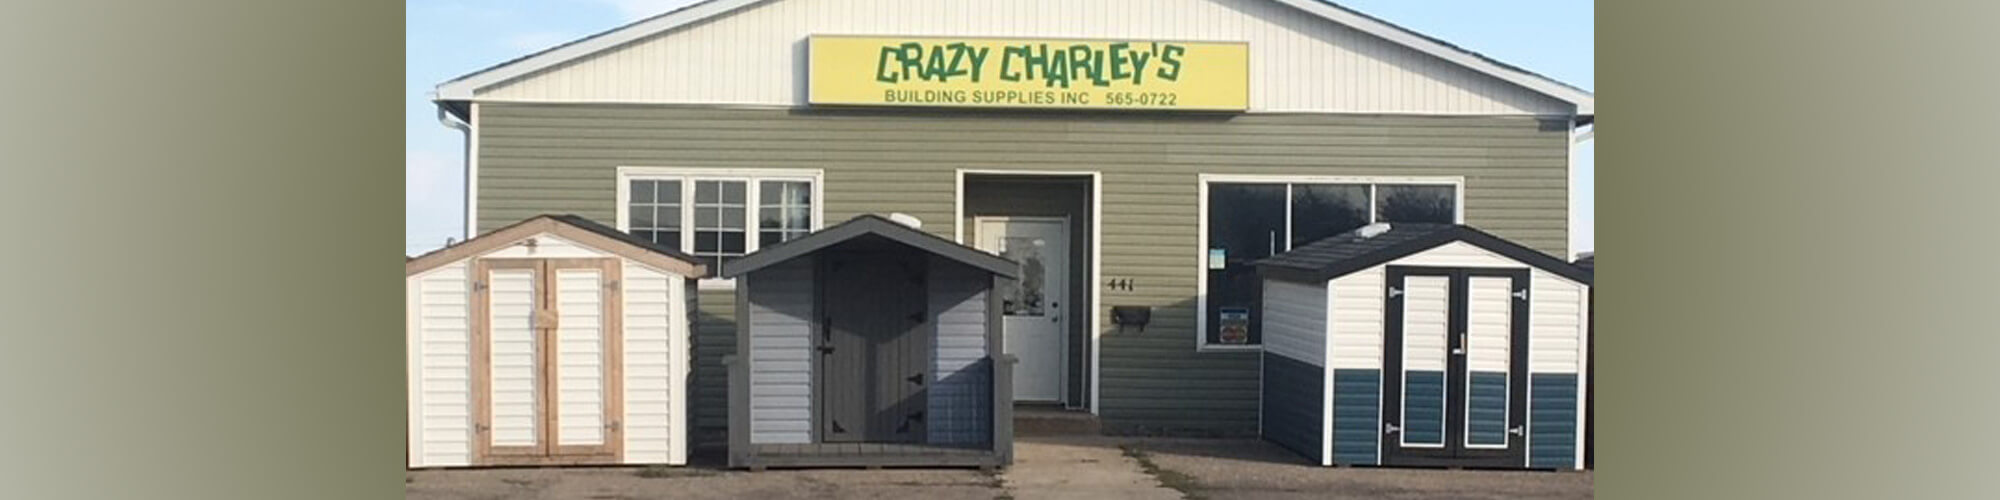 Crazy Charley's Building Supplies Inc